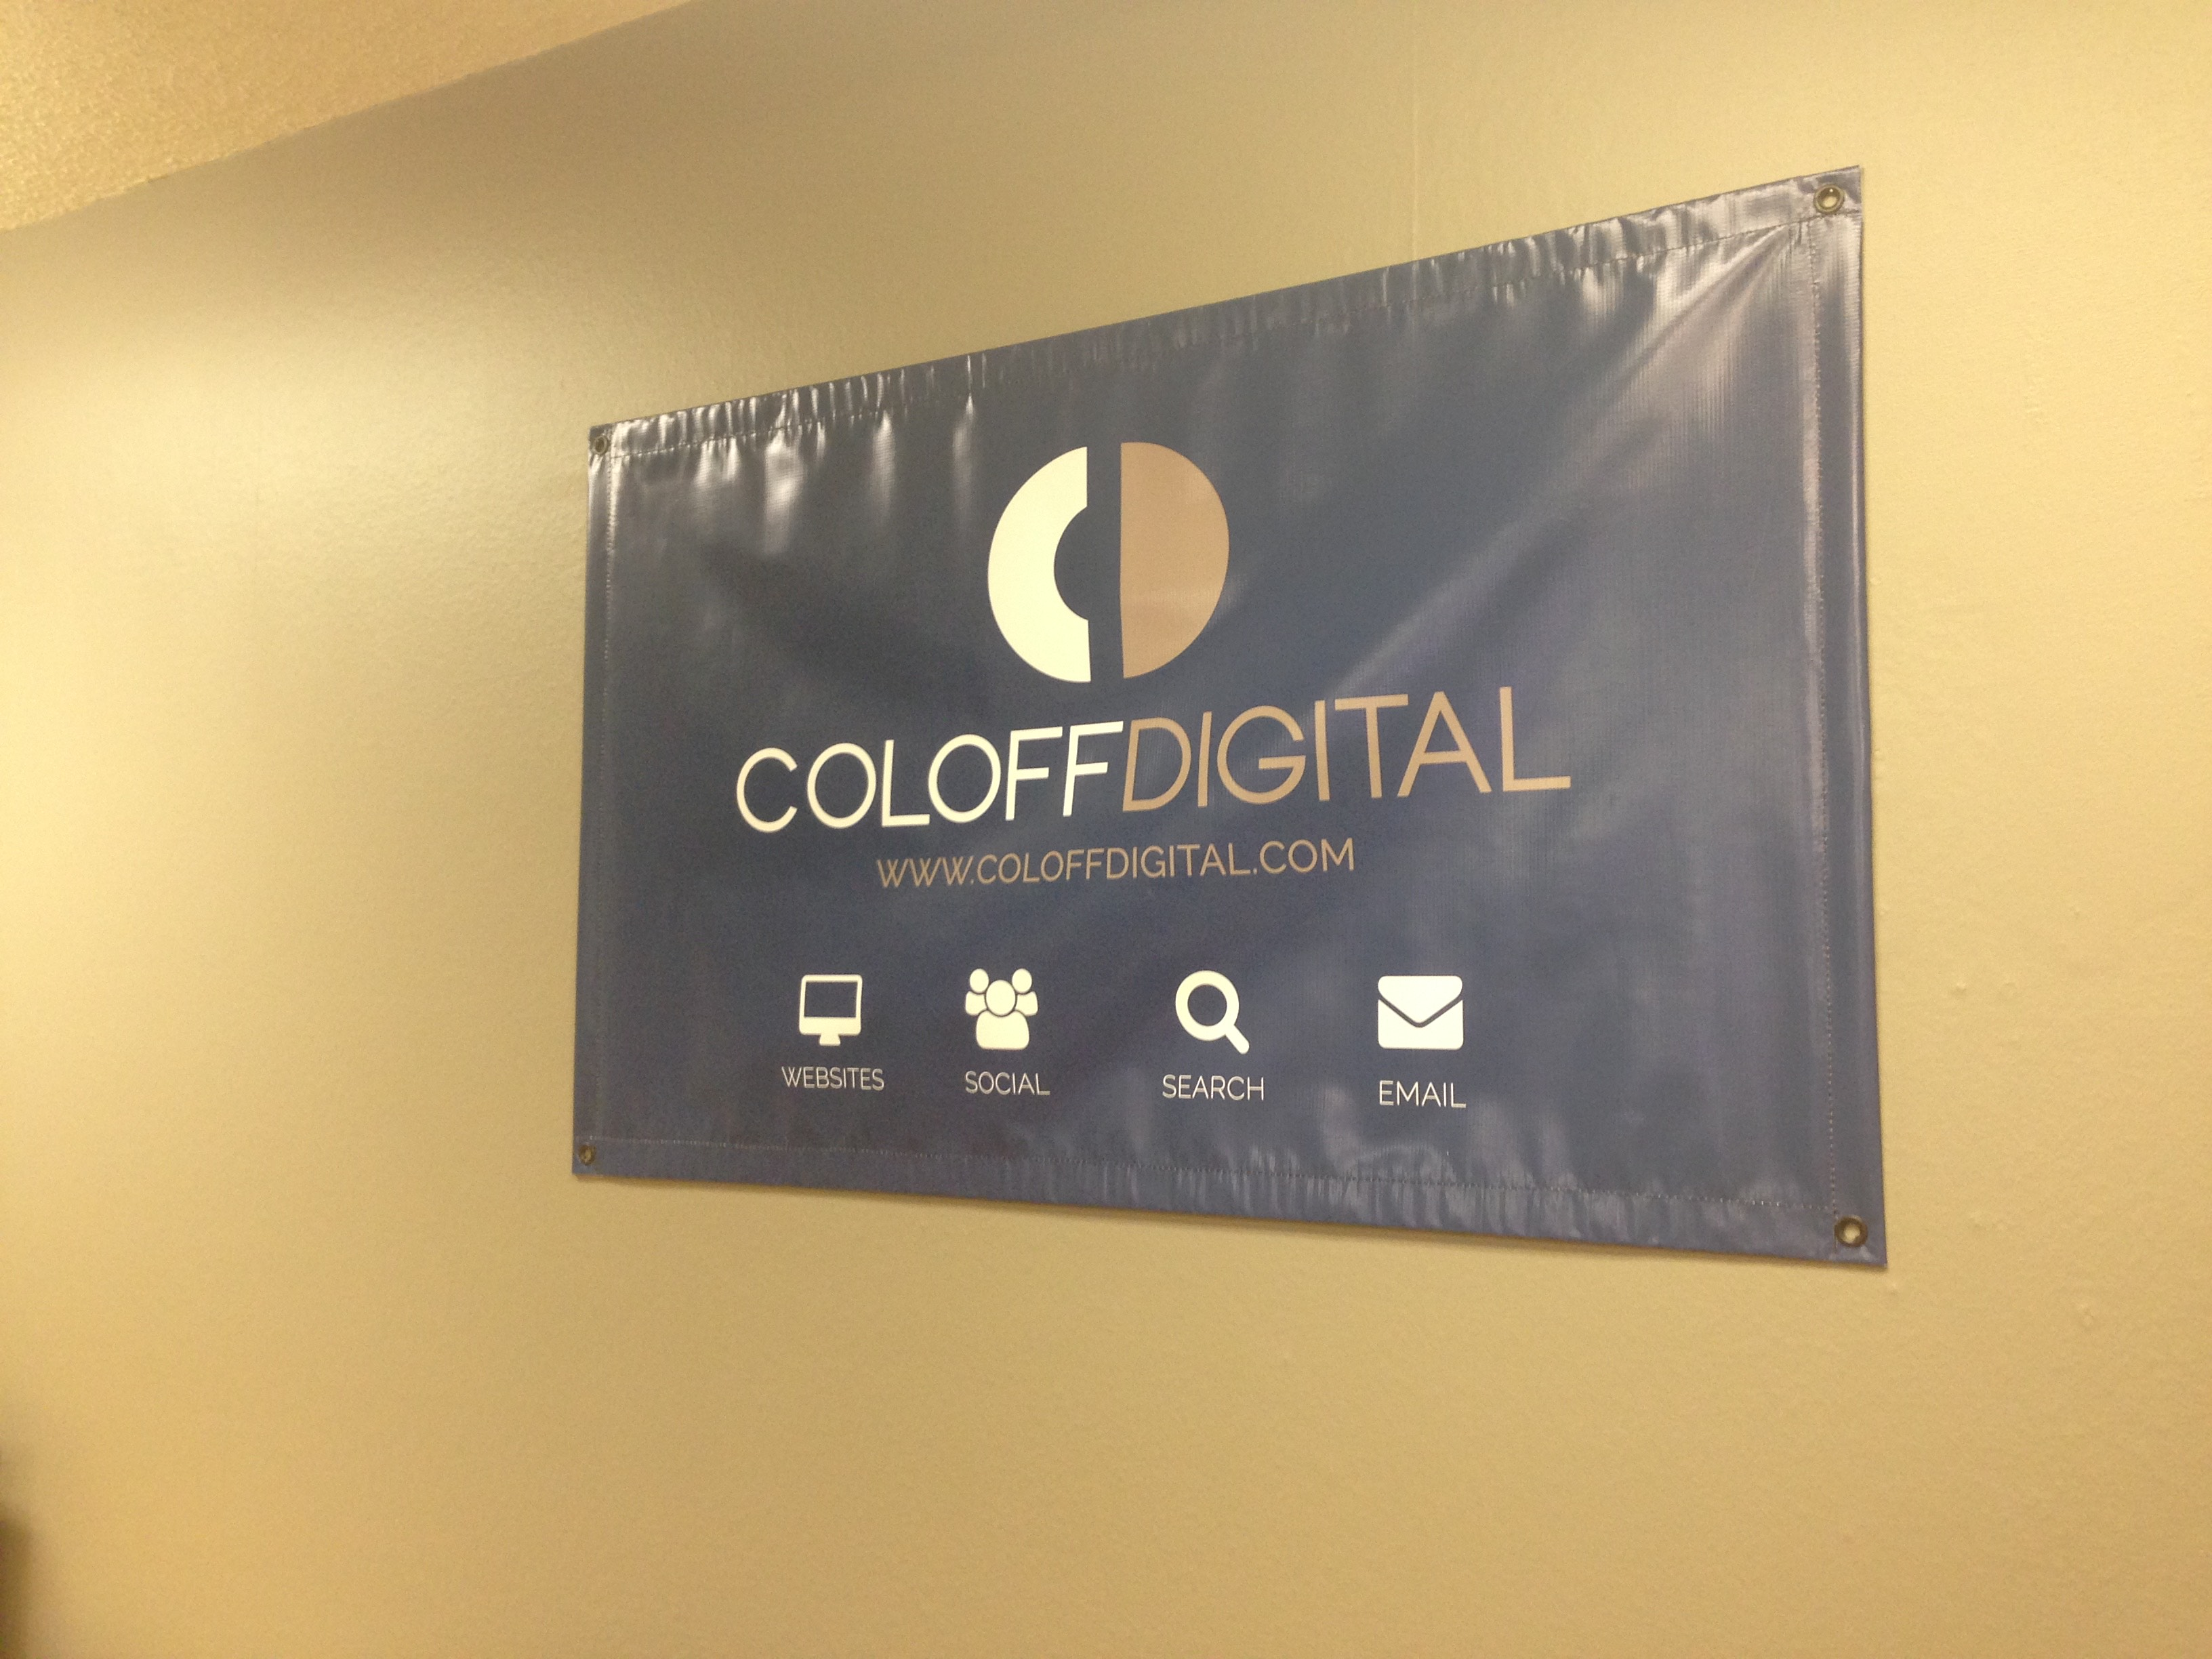 Making the new office official!